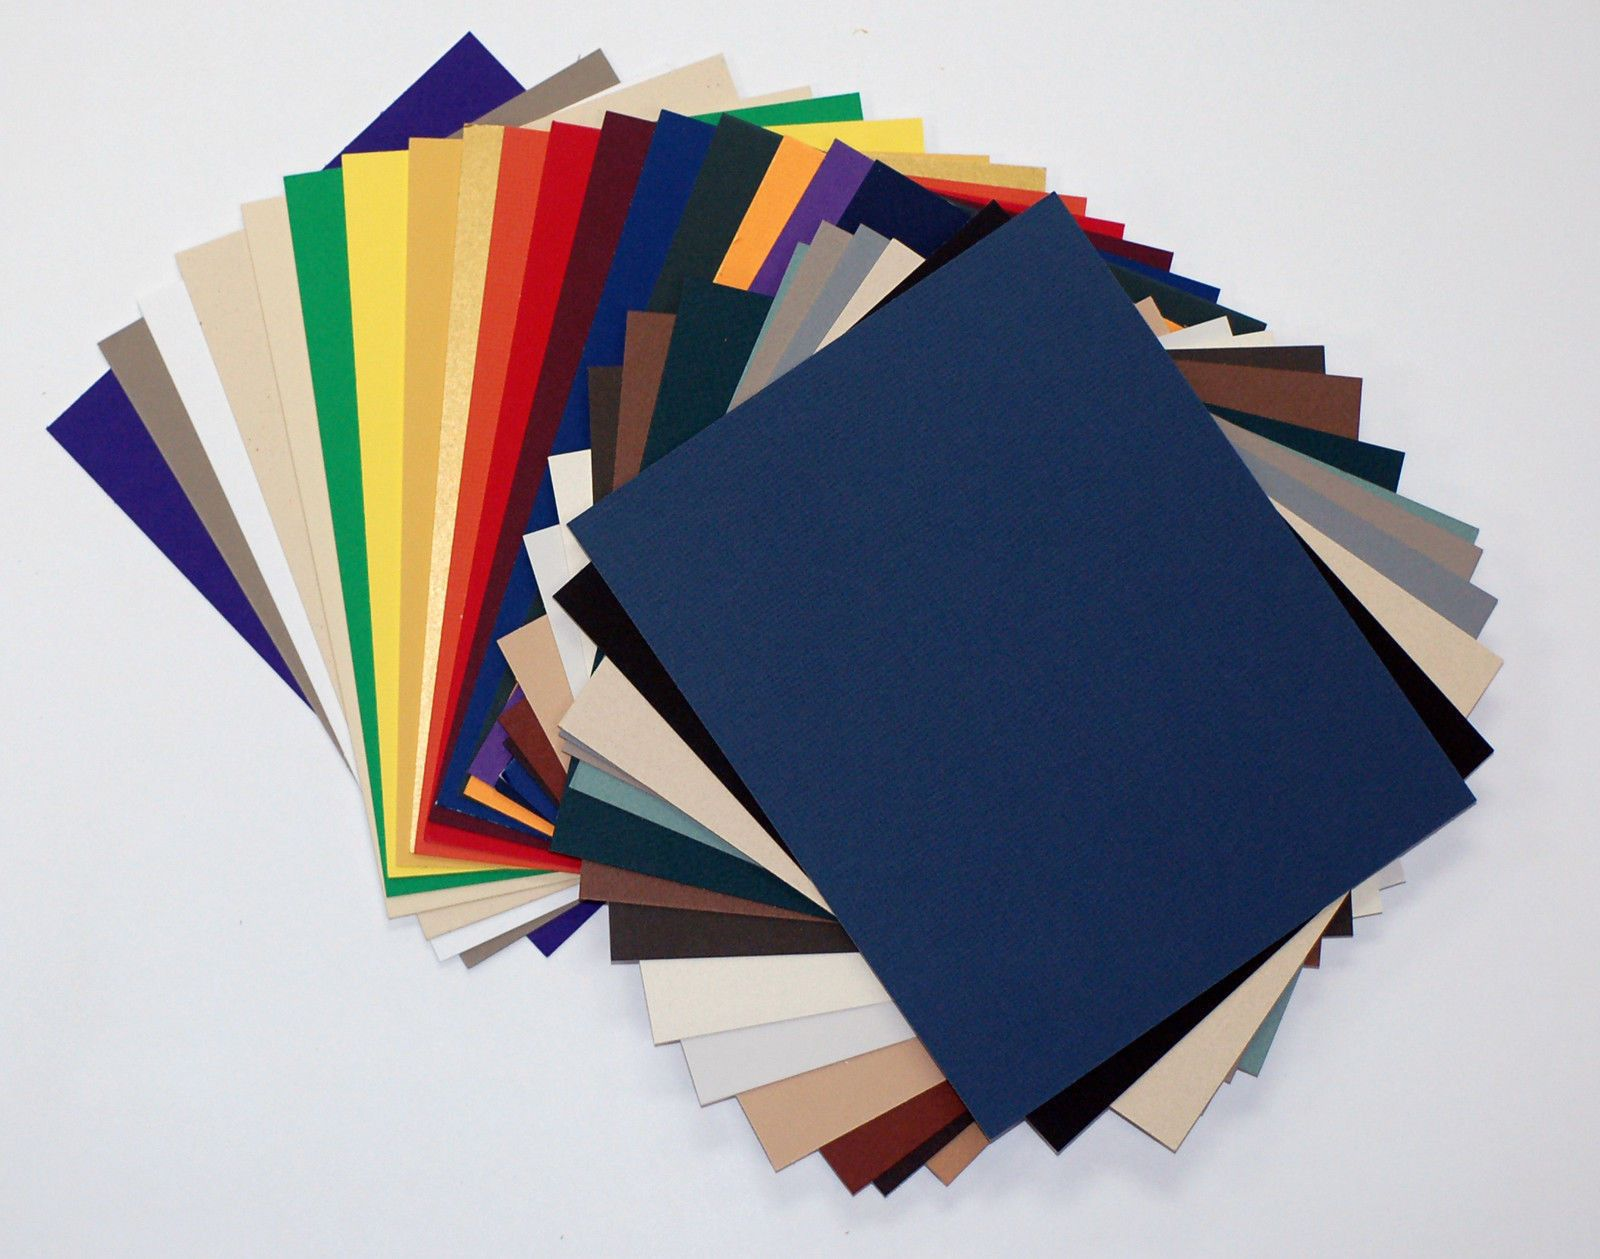 Framing Mats 37576 Matboard Mat Board 11x14 50 Pack No Opening Uncut Solid Assorted Colors Buy It Now Only 3 Soul Collage Picture Frame Mat Mat Board